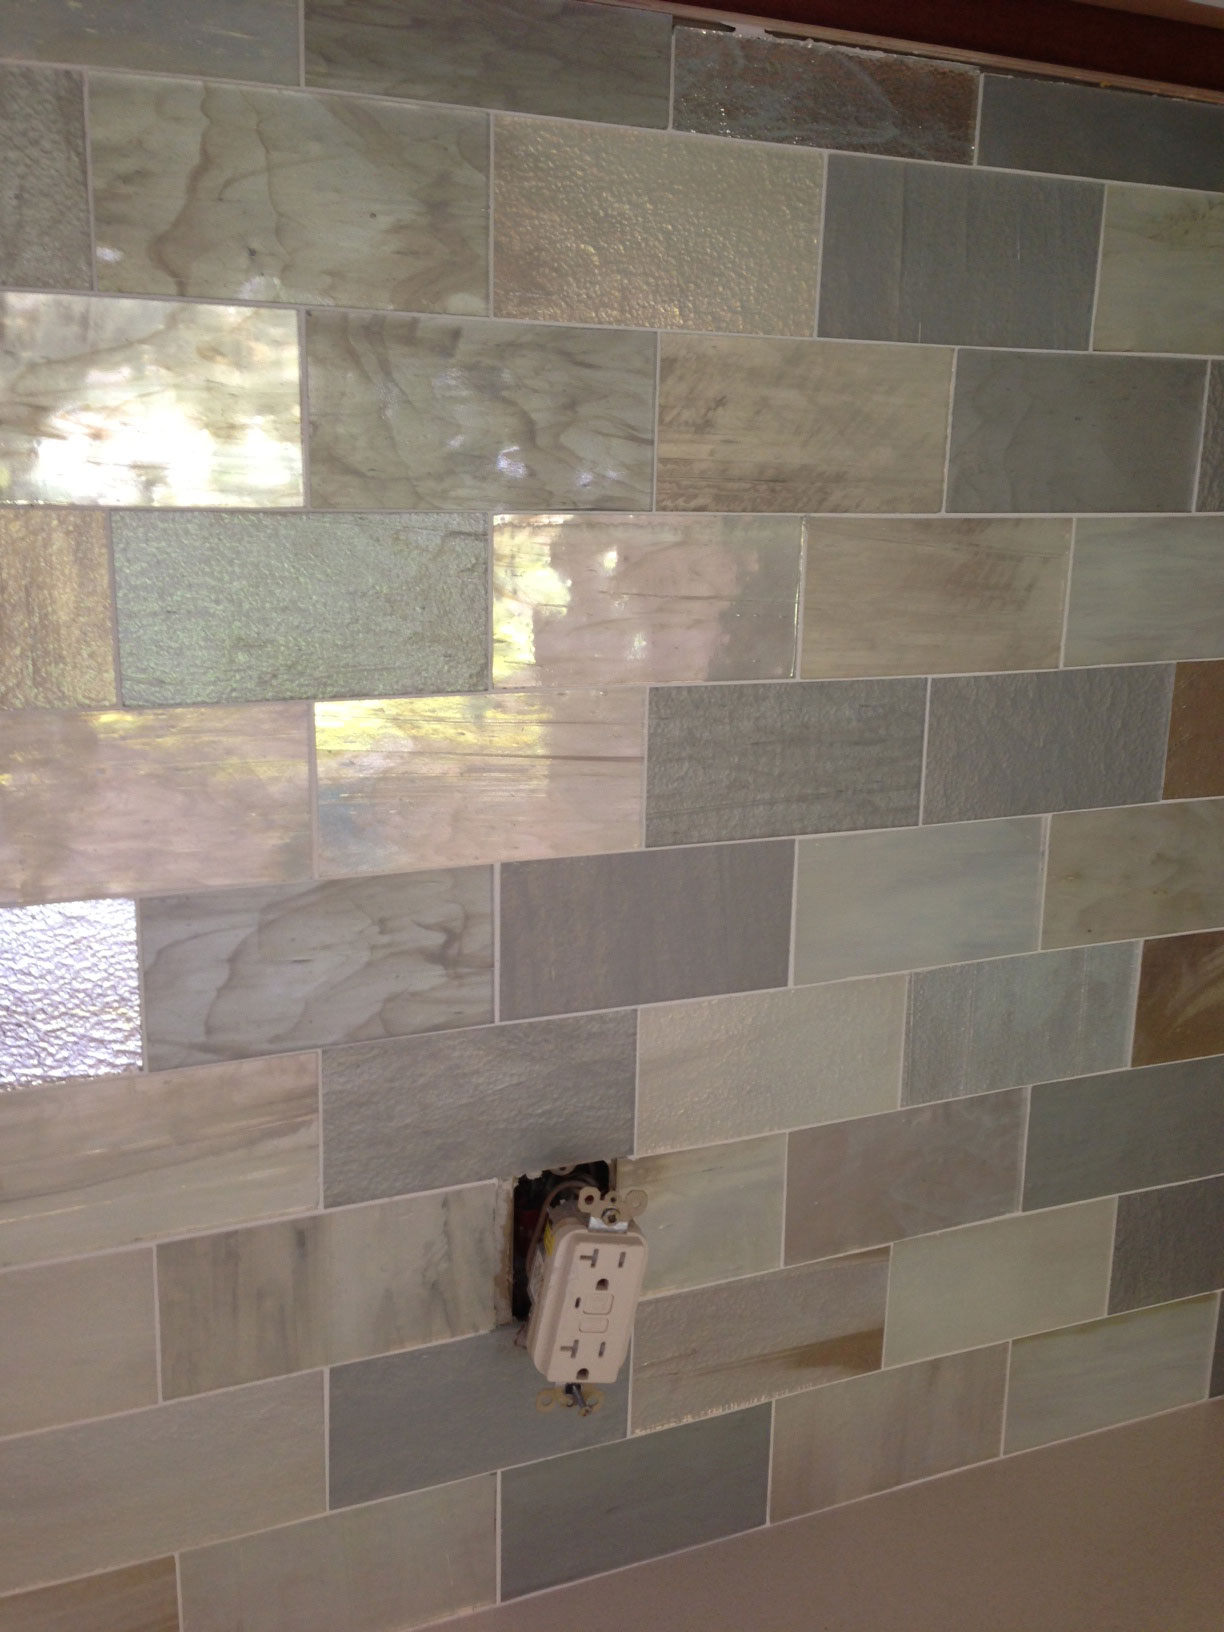 Lorna saunders interiors singer island house highlights handmade glass tile backsplash that resembles mother of pearl a nod to the homes sea side location caesarstone countertops dailygadgetfo Images